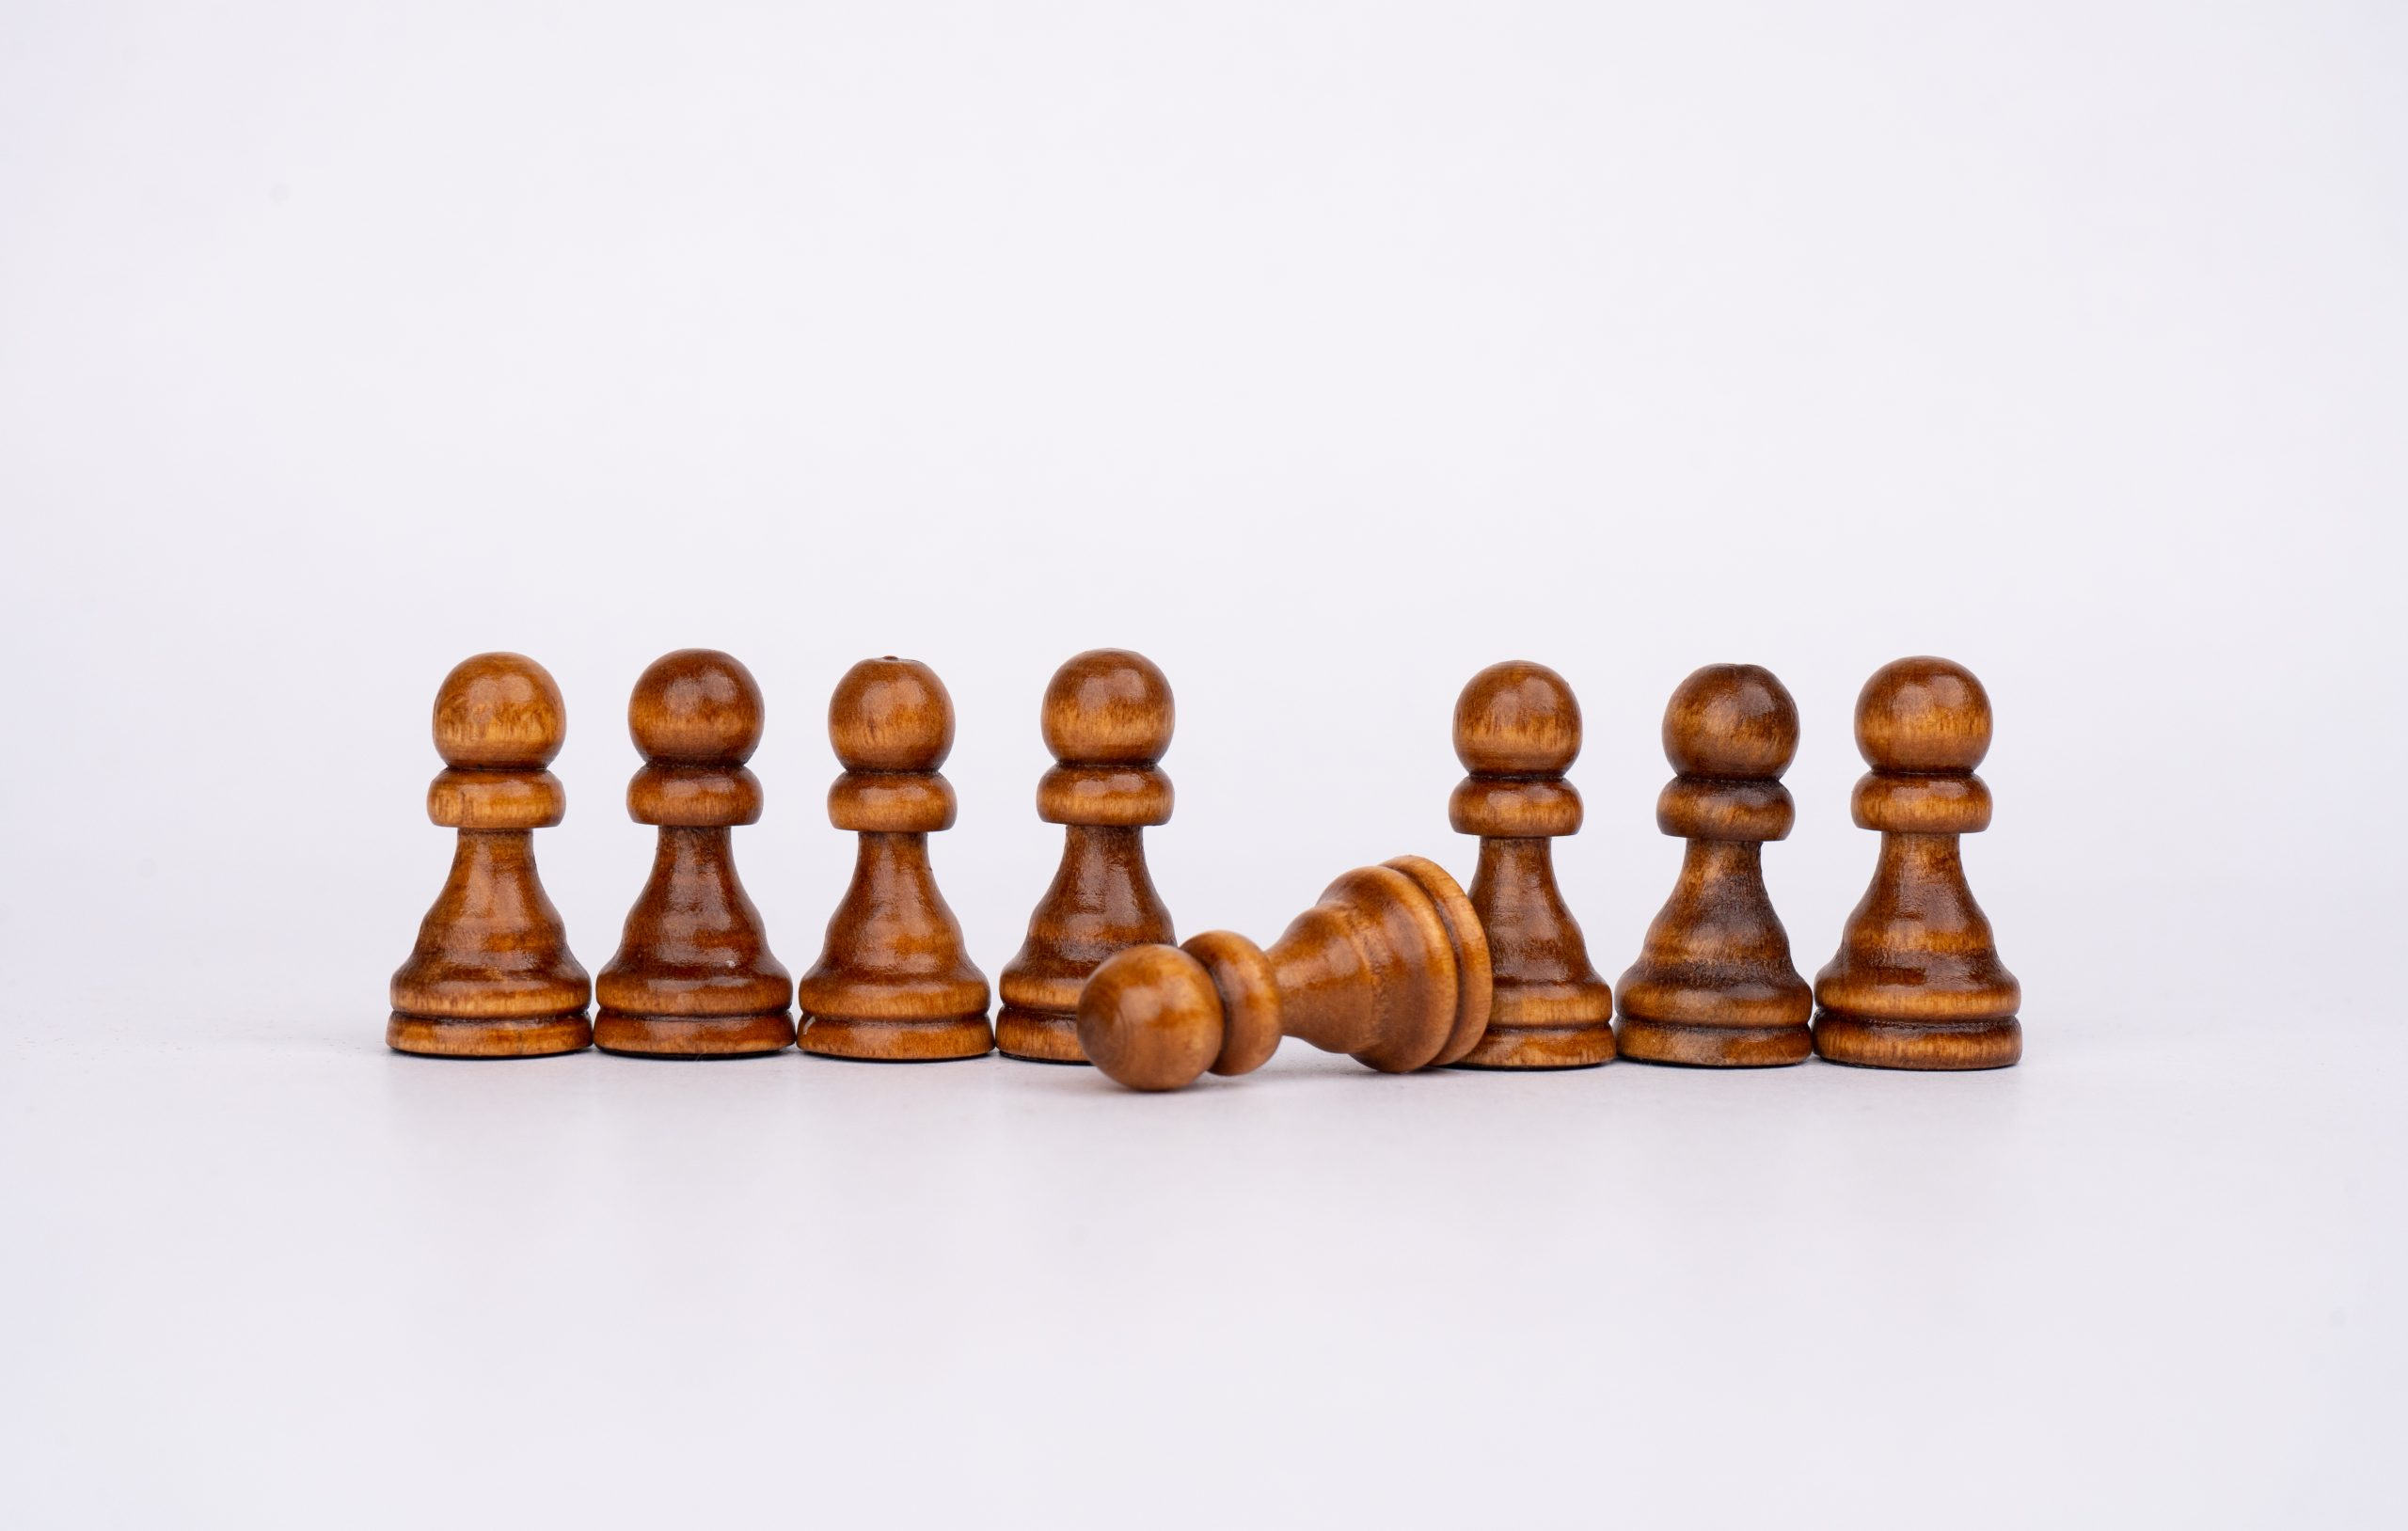 Pawns formation on white background